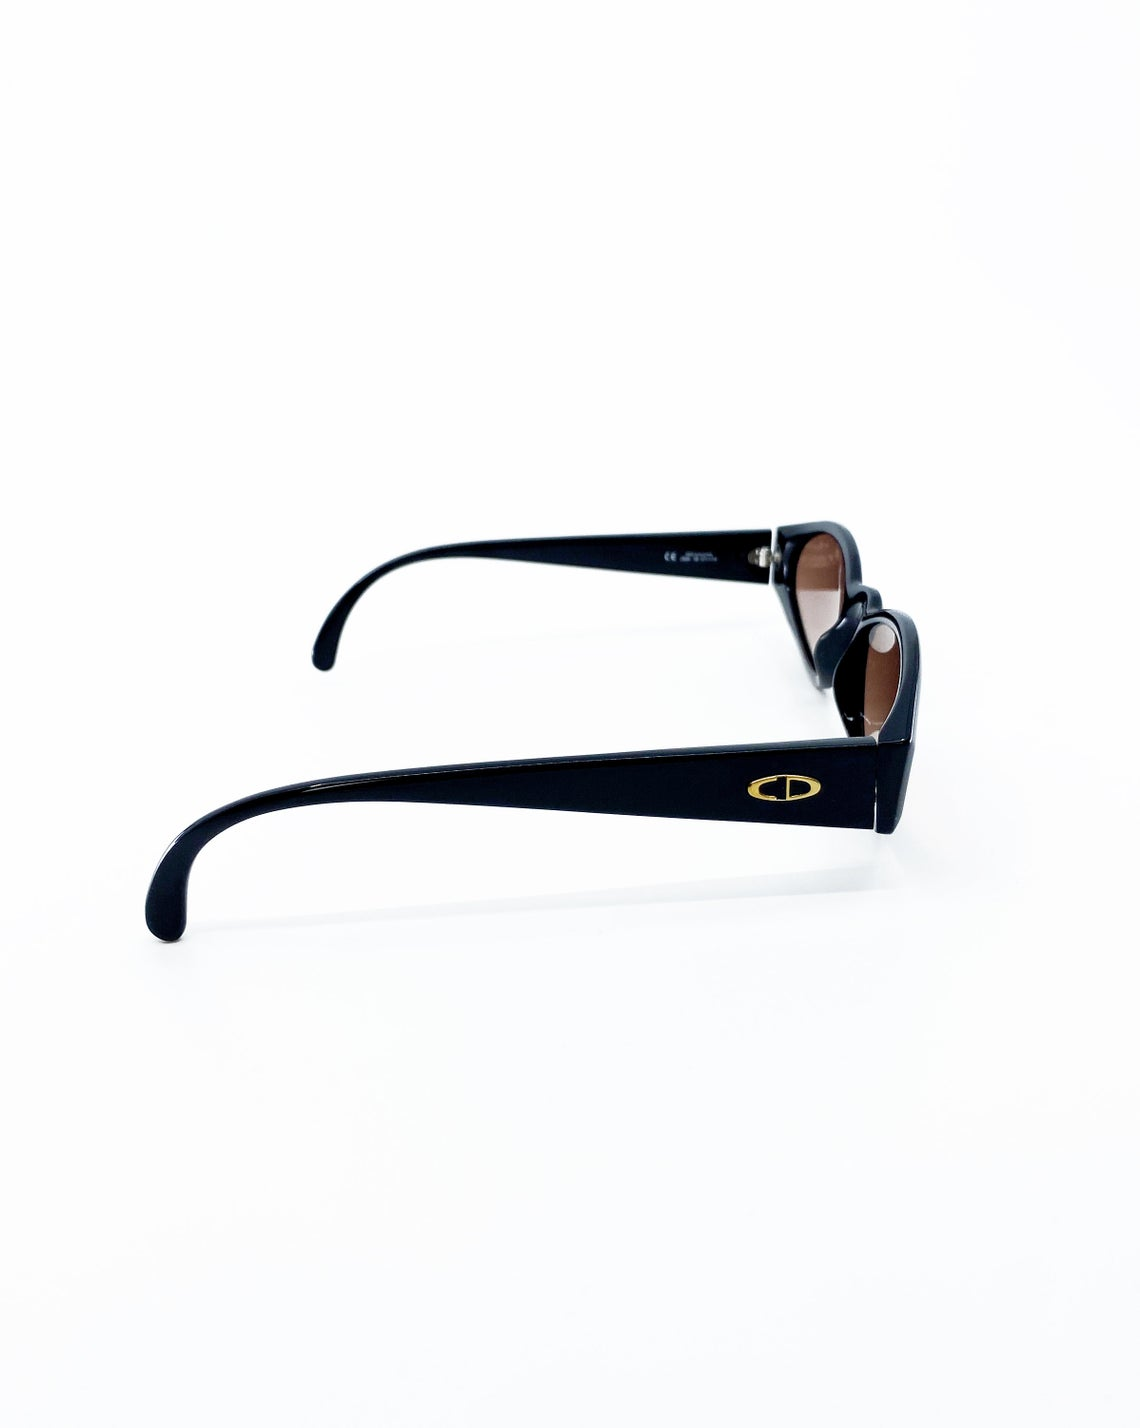 Fruit Vintage Christian Dior sunglasses dating to 1990. These small oval frames feature a gold trim over the nose and CD logo to each arm.